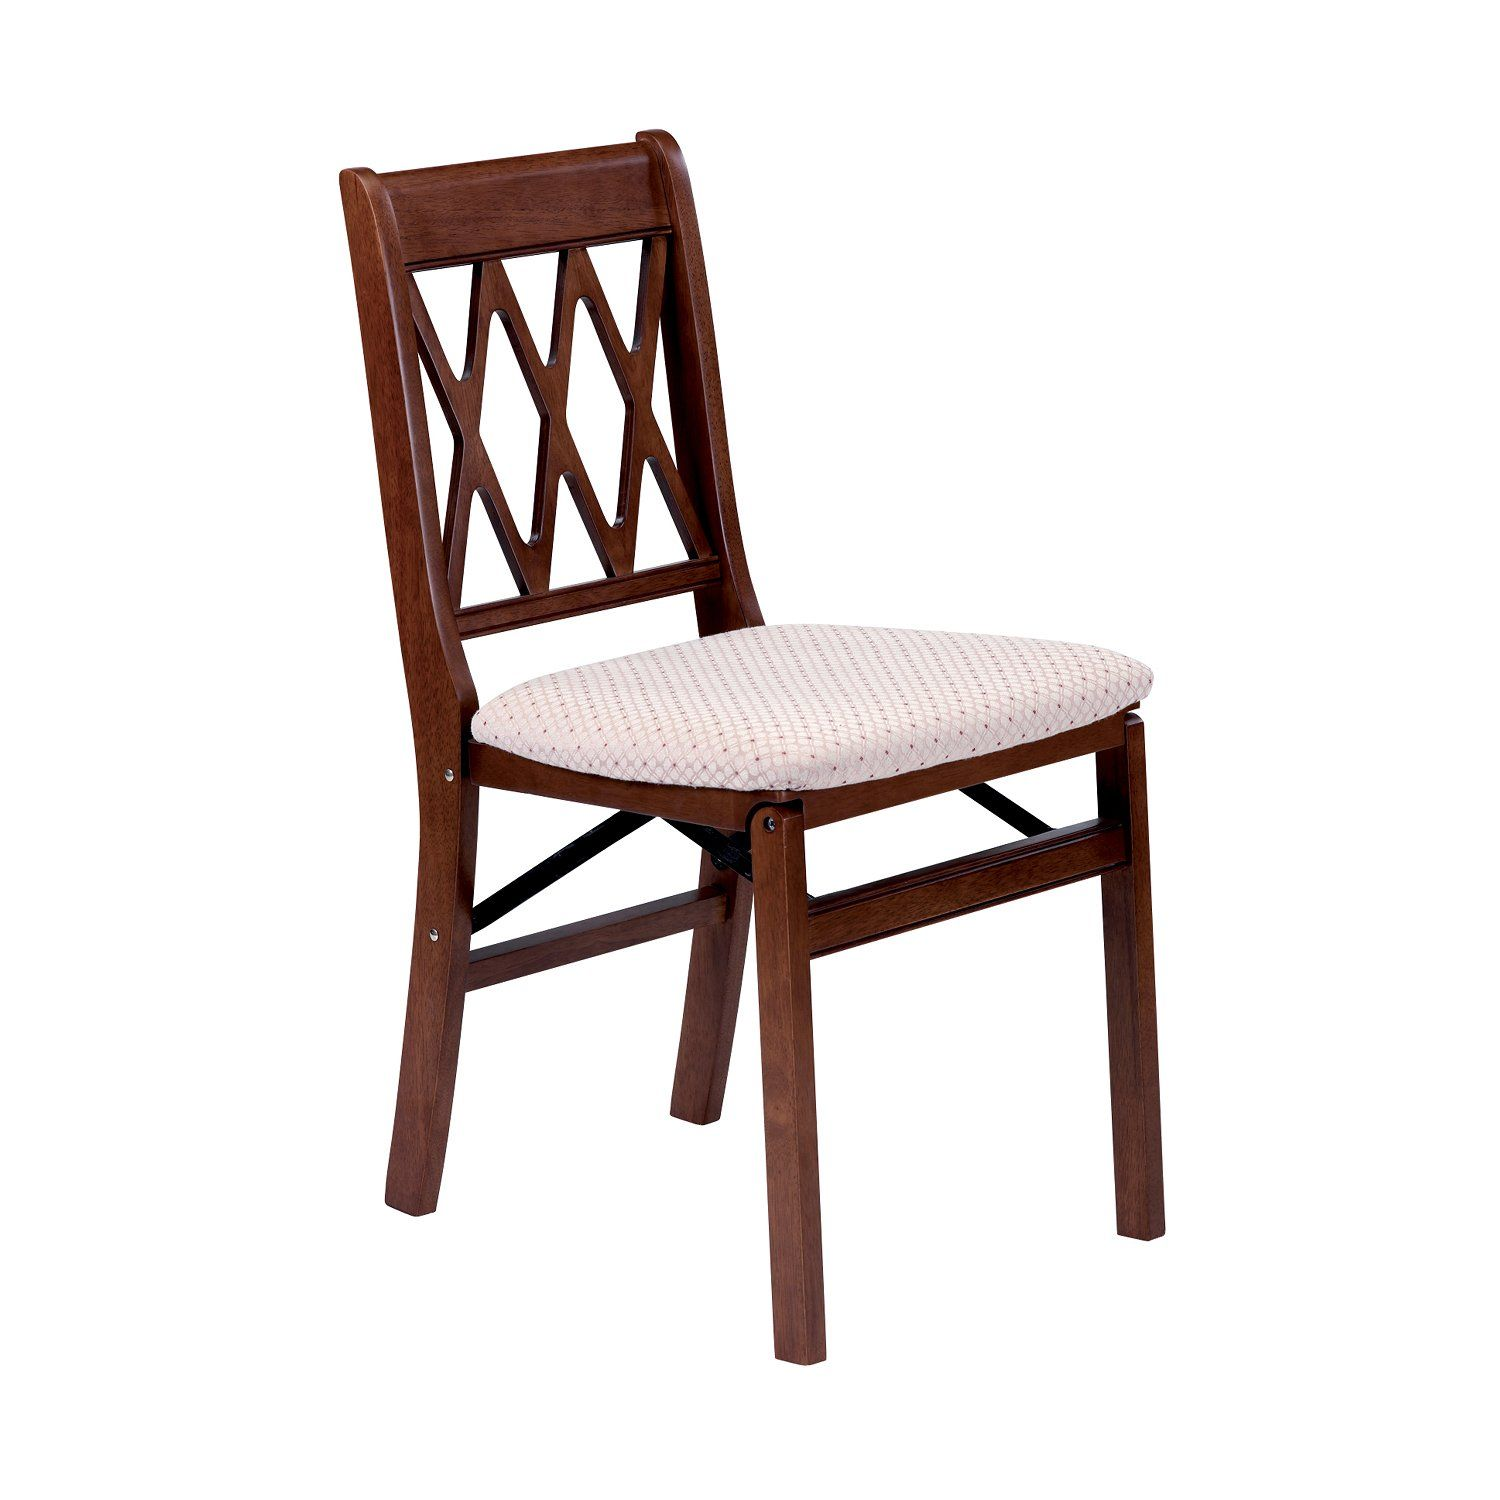 furniture indoor with chairs wood back sourceimage details cosco chair mission vinyl eng folding products seat